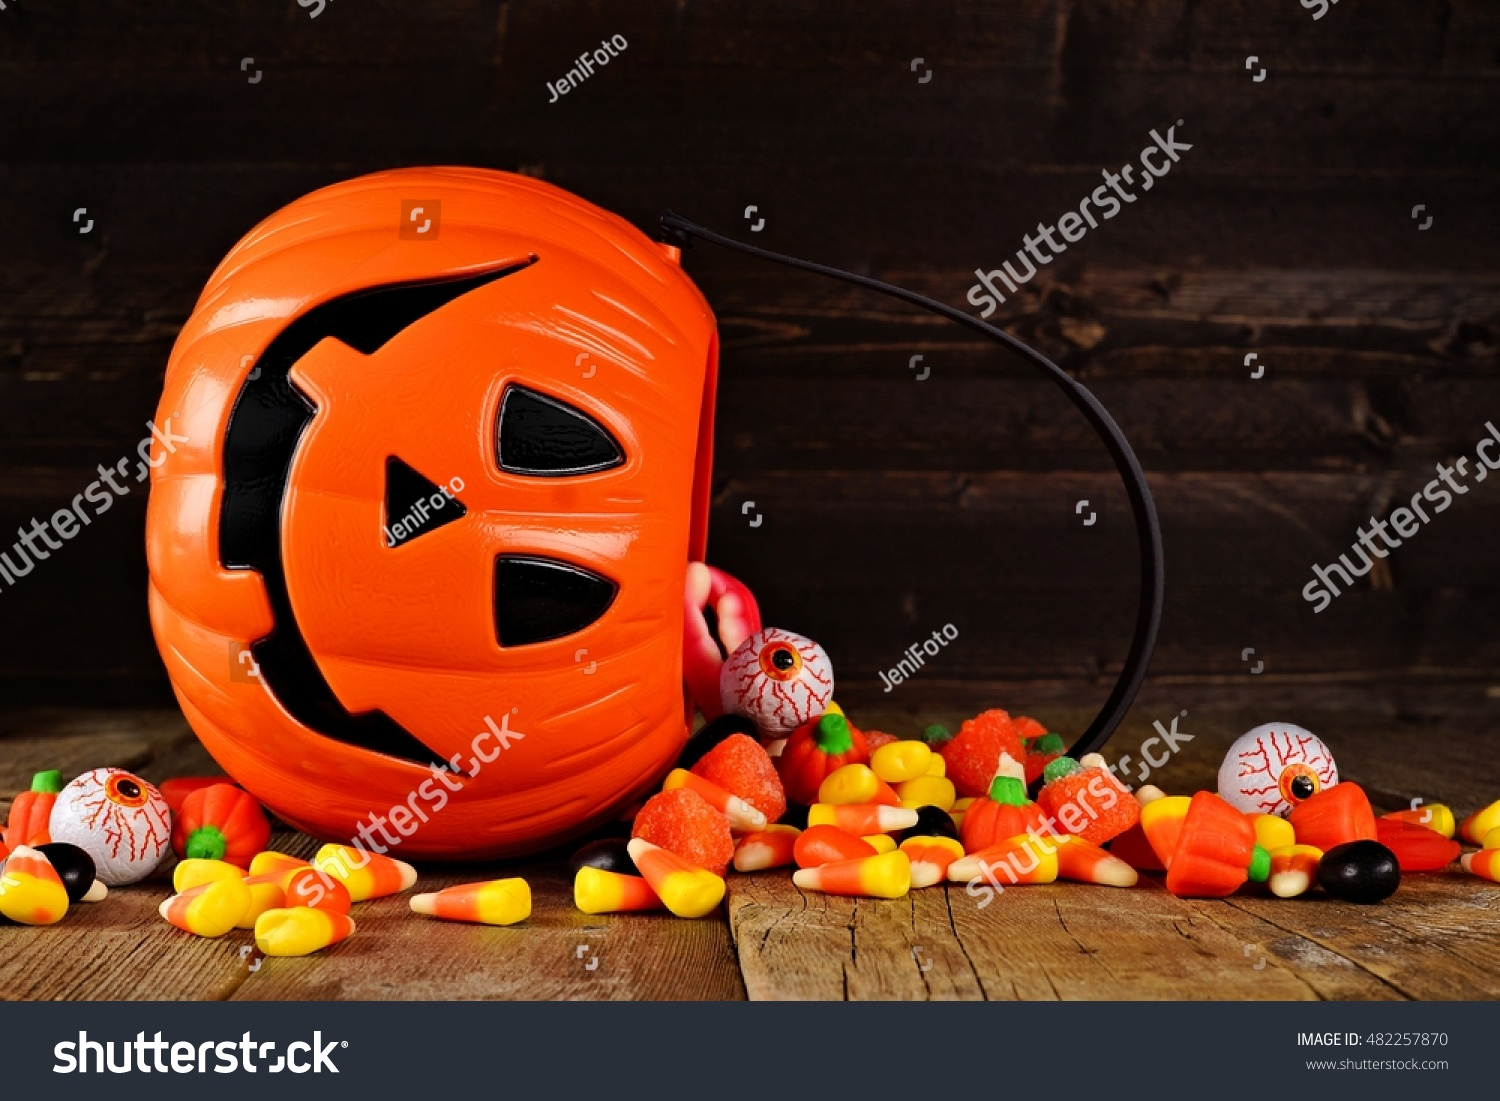 halloween jack o lantern candy holder stock photo (edit now